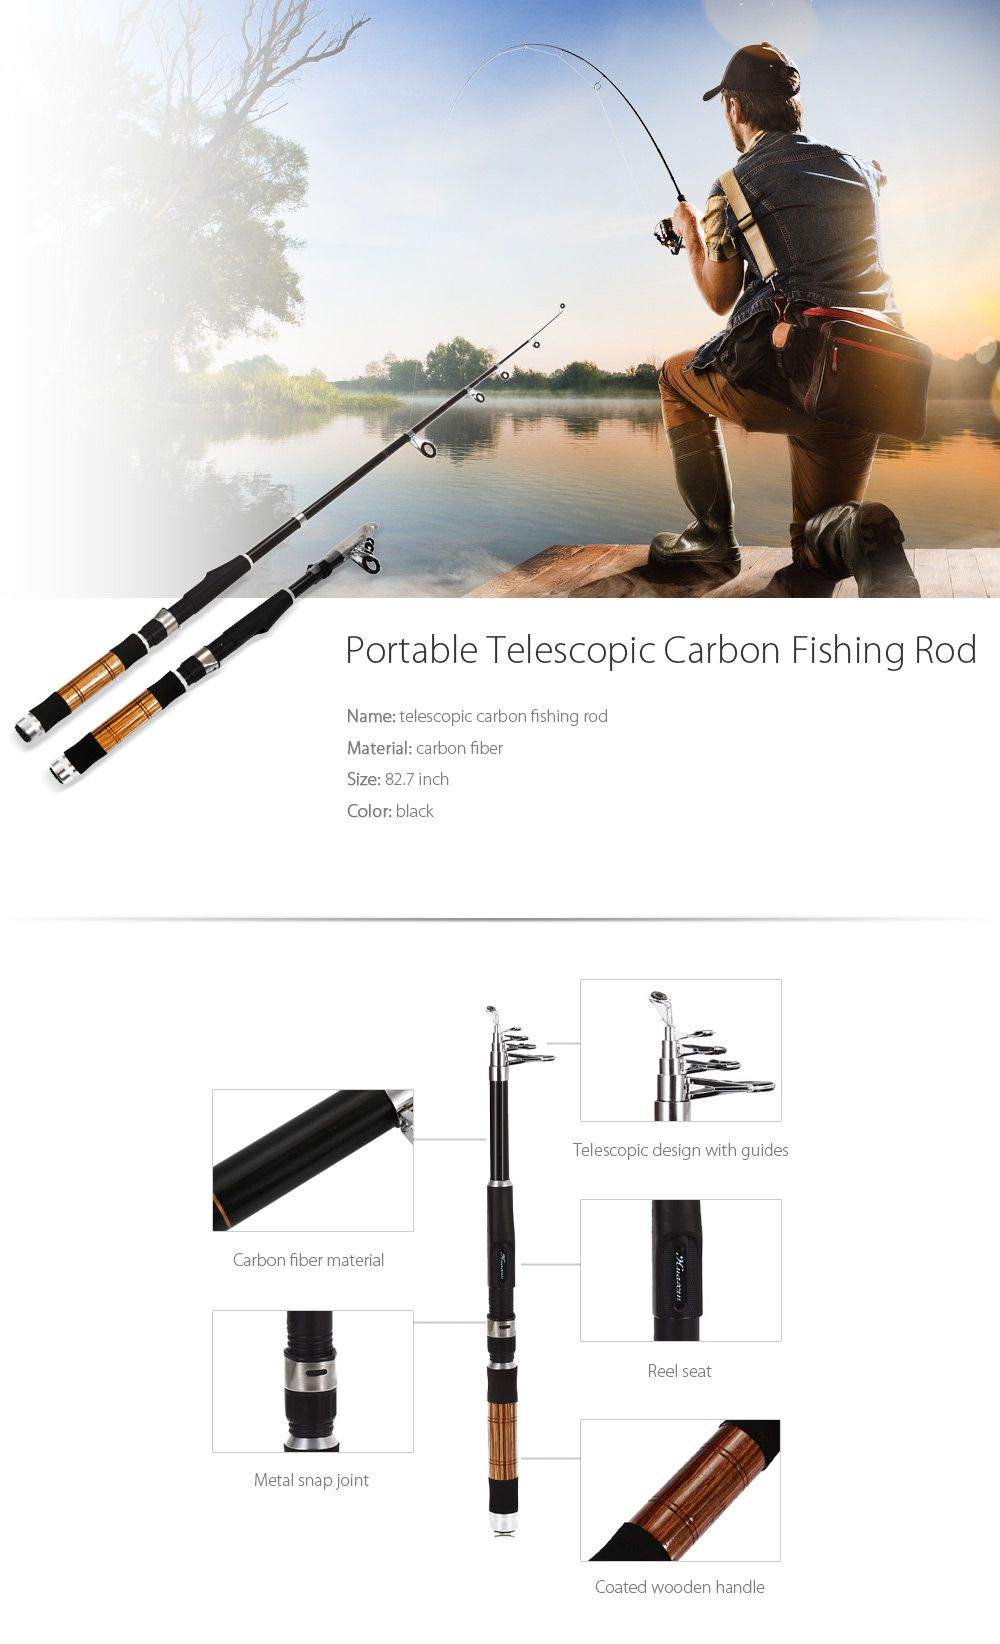 82.7 inch Portable Telescopic Carbon Fishing Rod Fish Pole